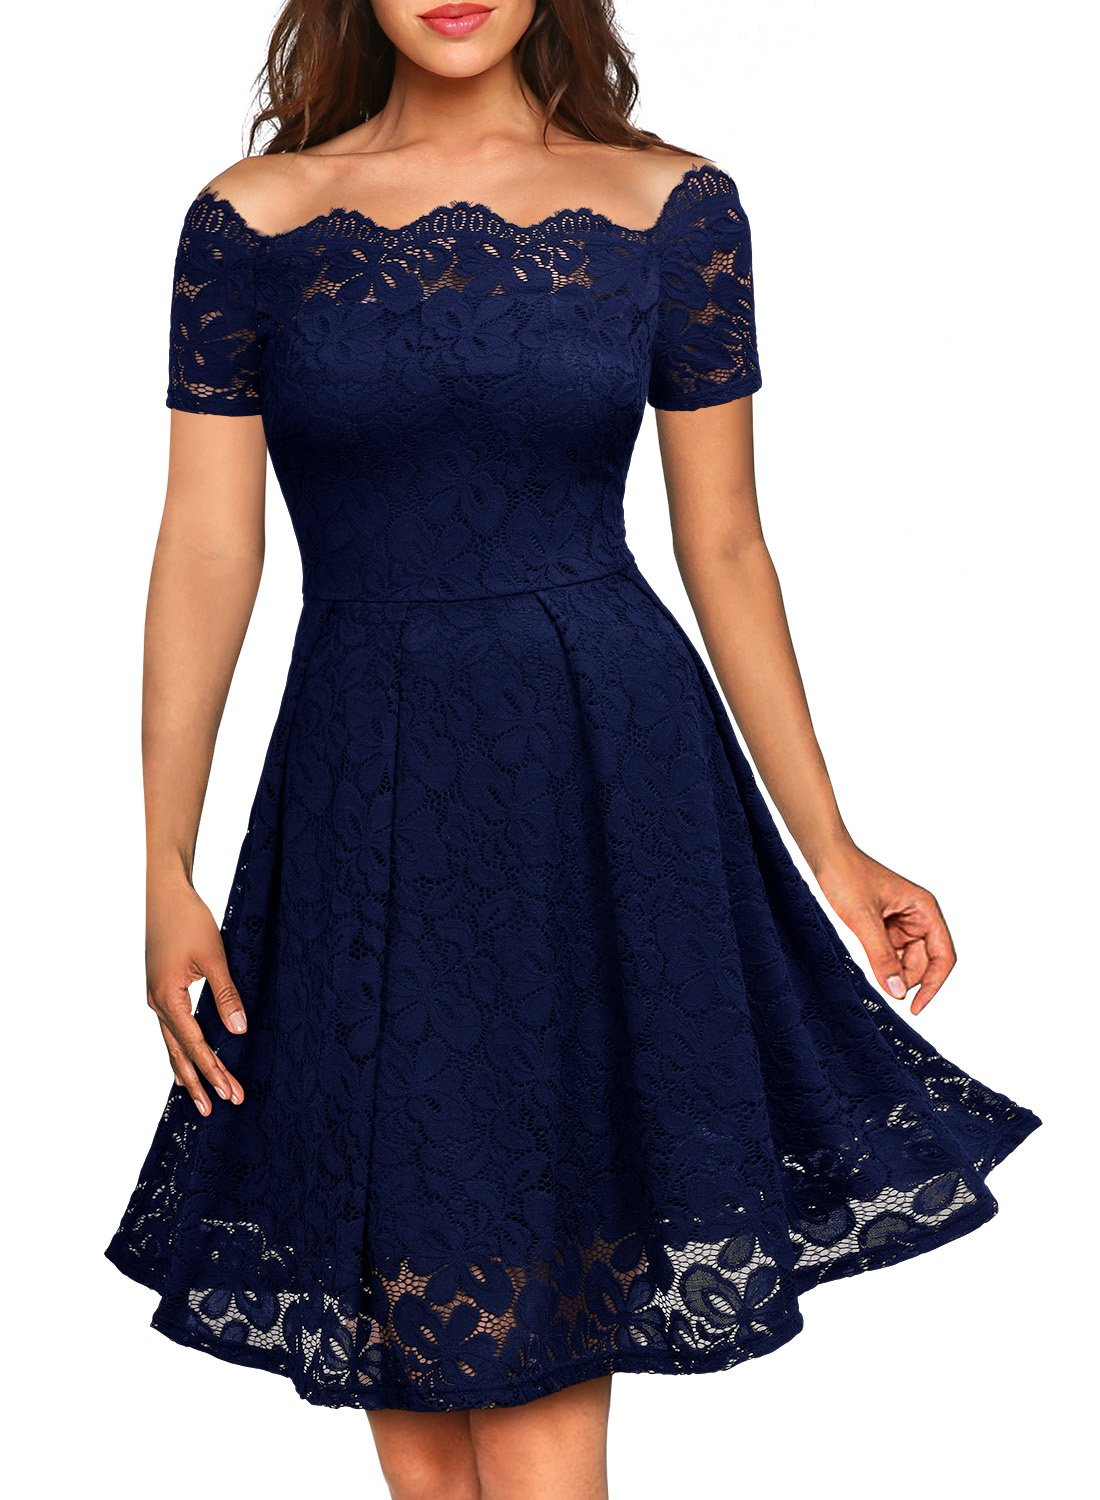 91fa62adb4e MISSMAY Women s Vintage Floral Lace Boat Neck Cocktail Formal Swing Dress  product image